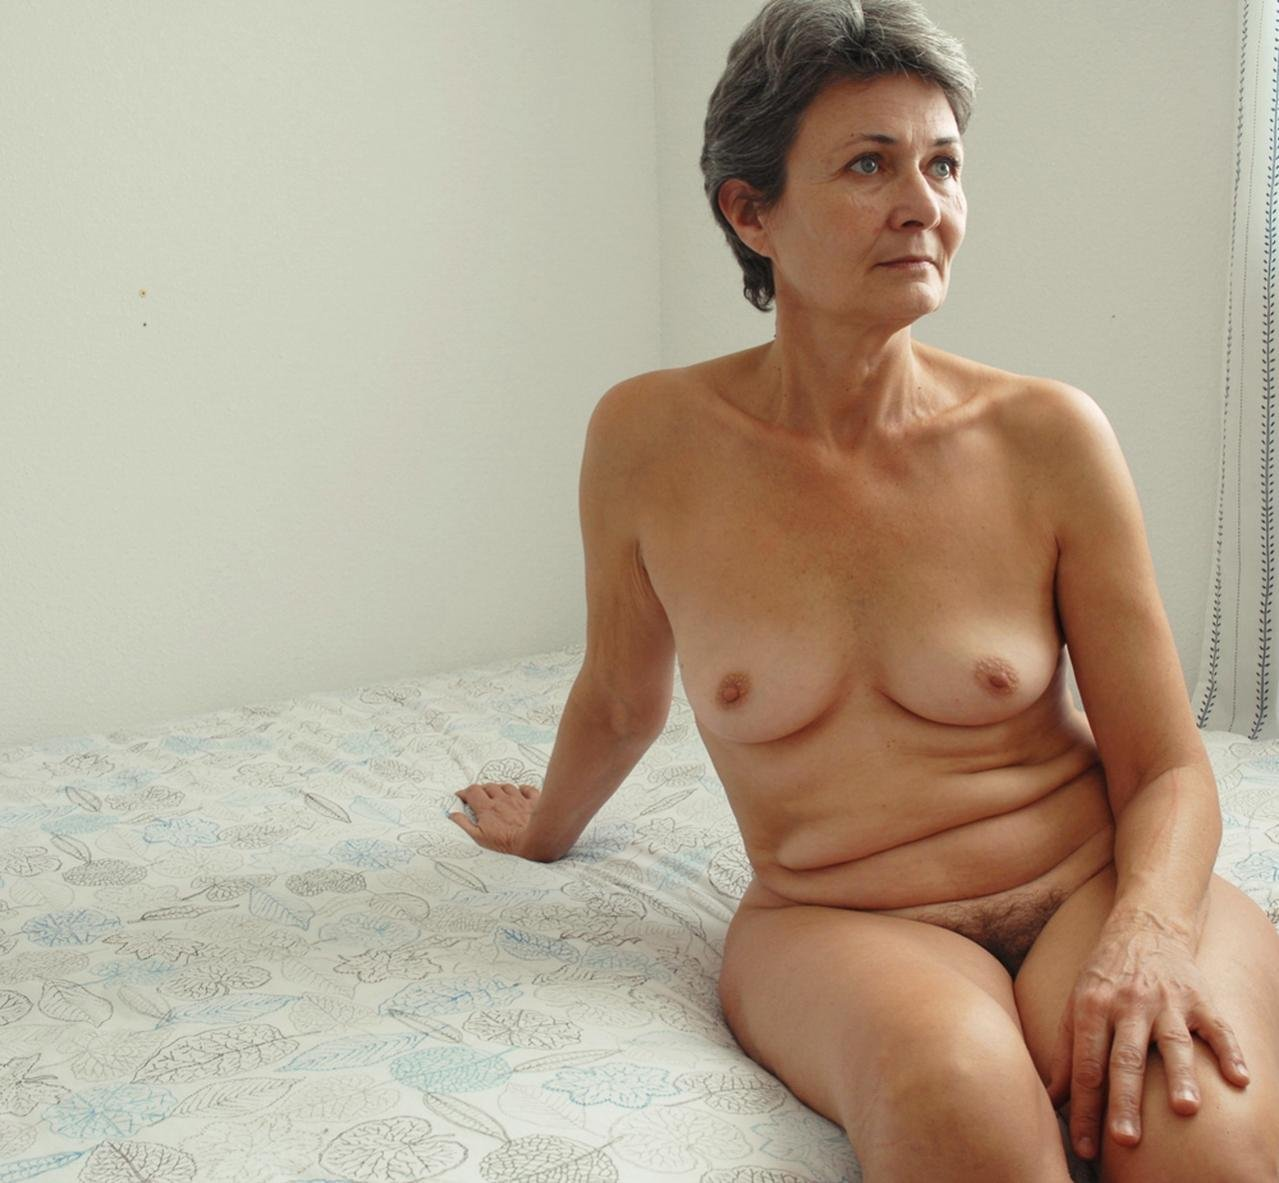 nude-photos-of-old-women-nordic-aliens-naked